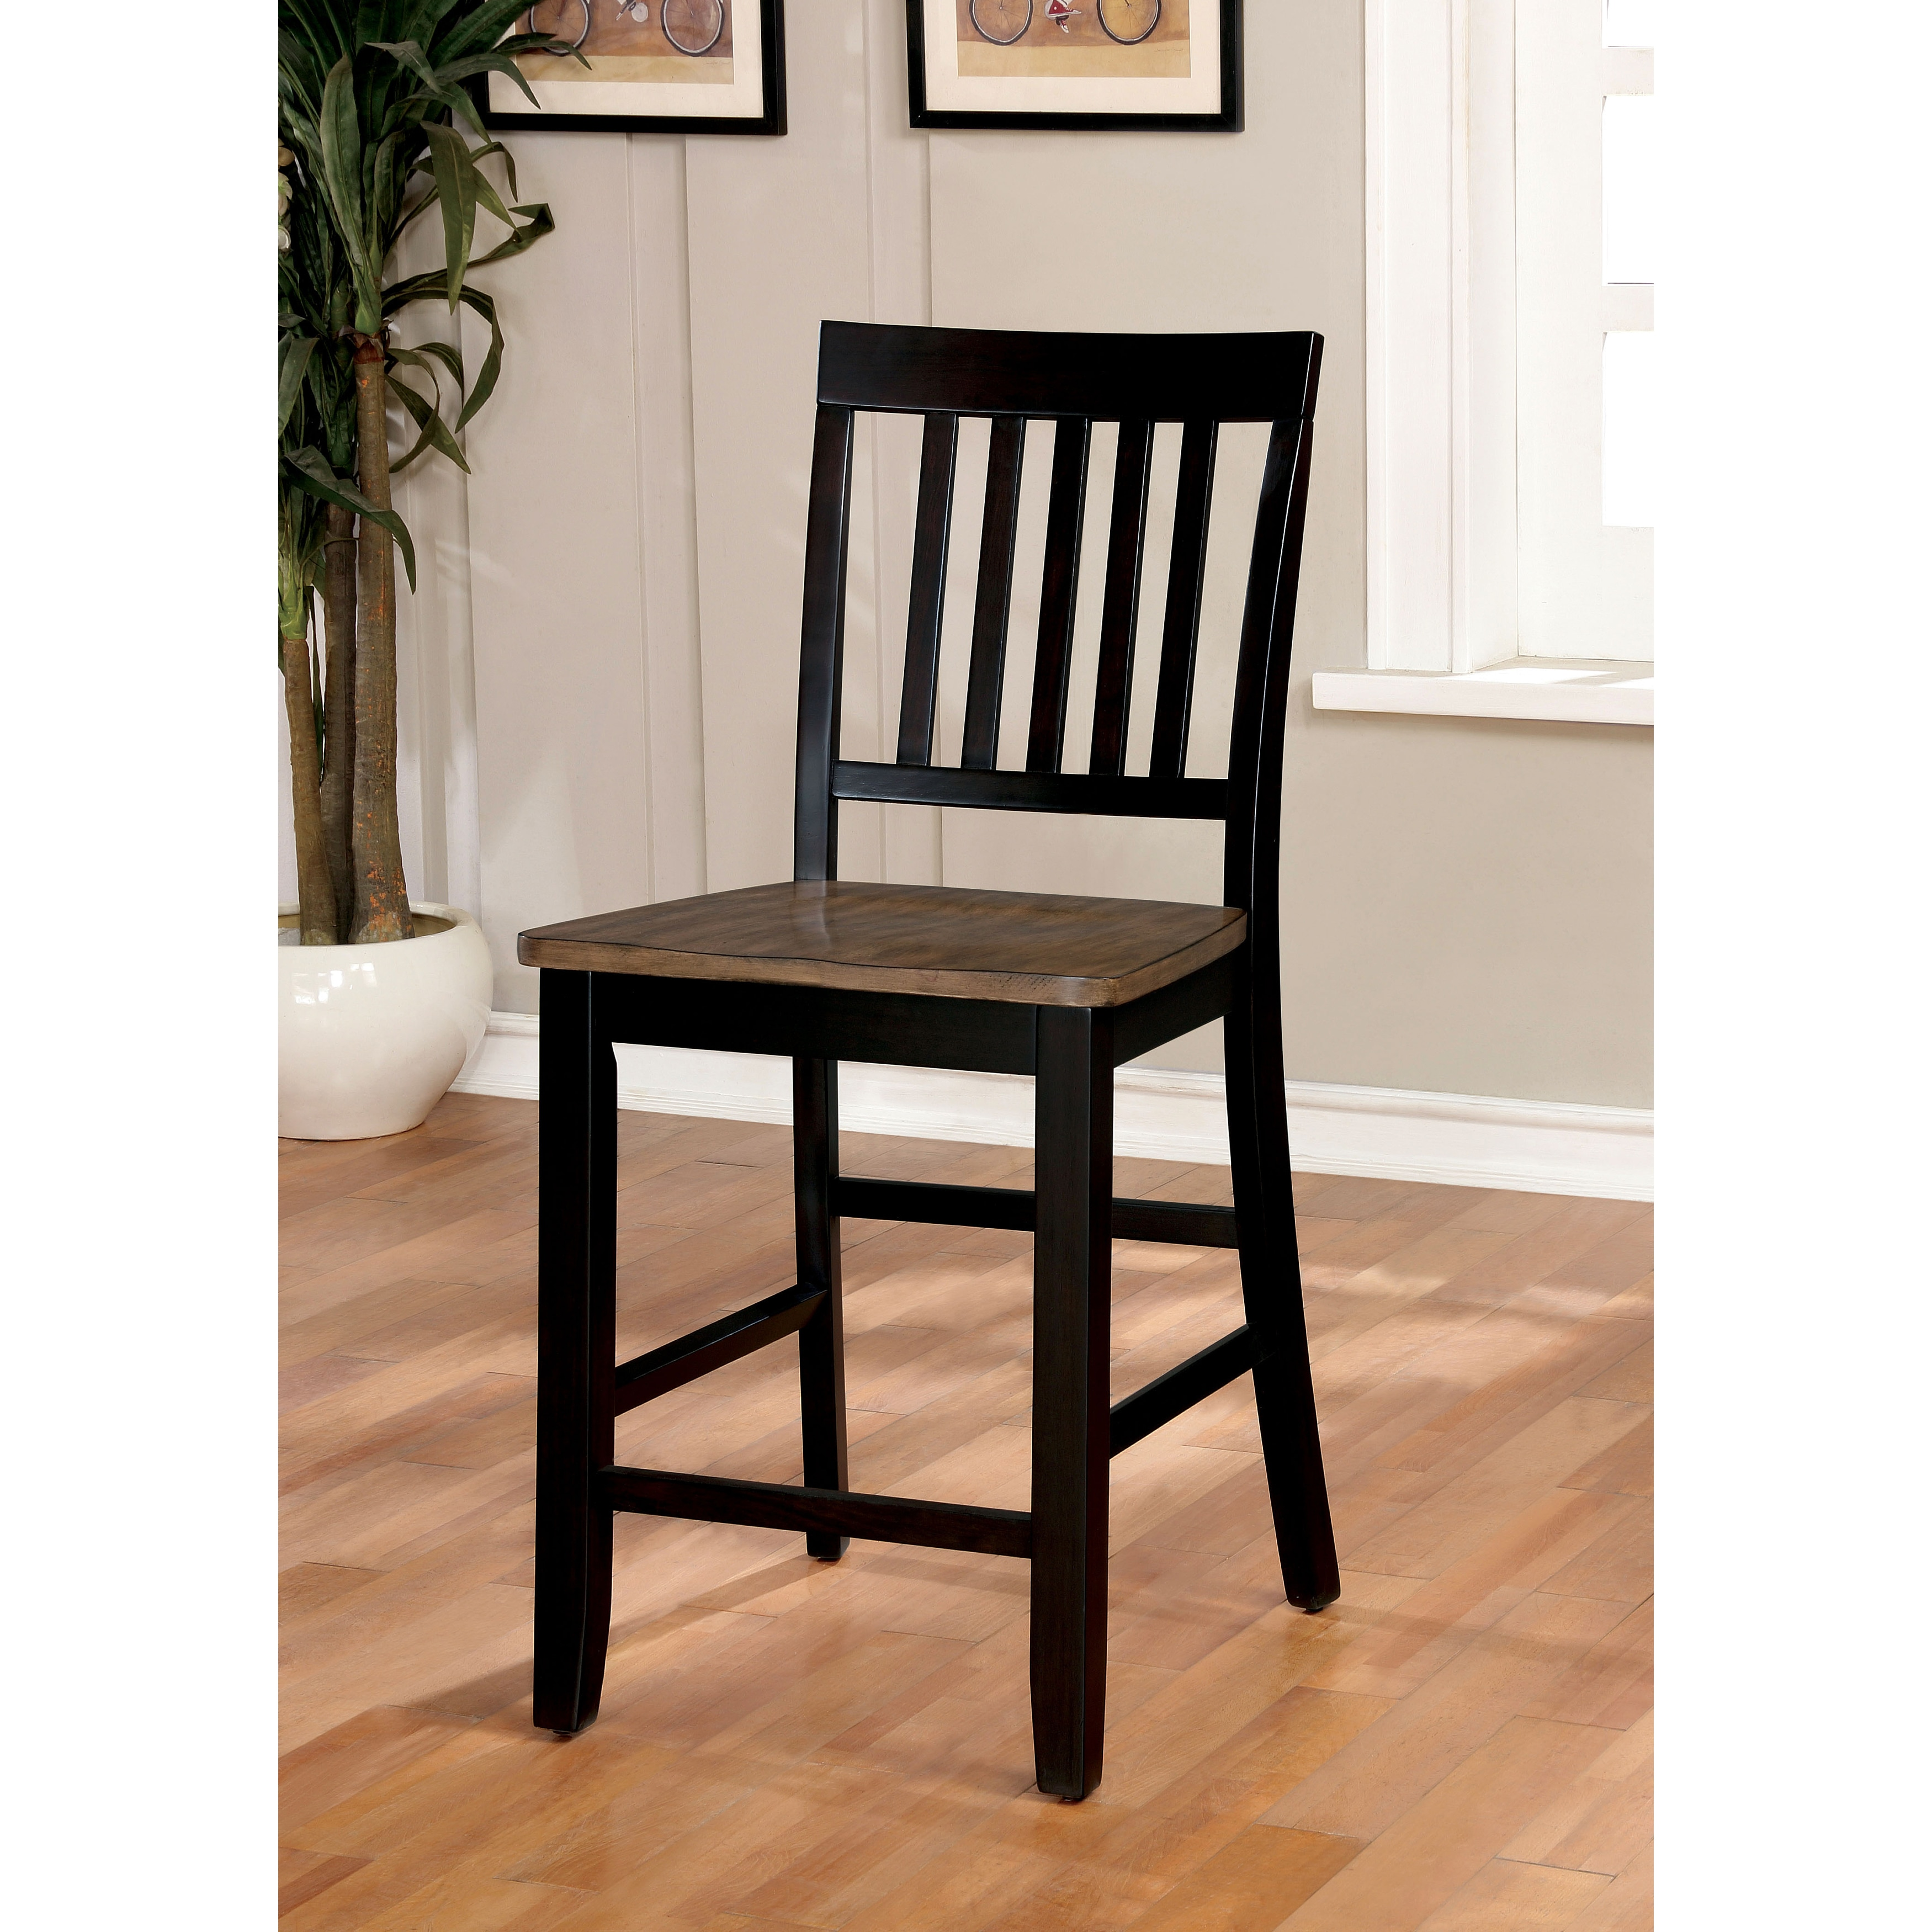 Furniture of America Fresial 9-piece Counter Height Dining Set - Free Shipping Today - Overstock - 24360092  sc 1 st  Overstock.com & Furniture of America Fresial 9-piece Counter Height Dining Set ...